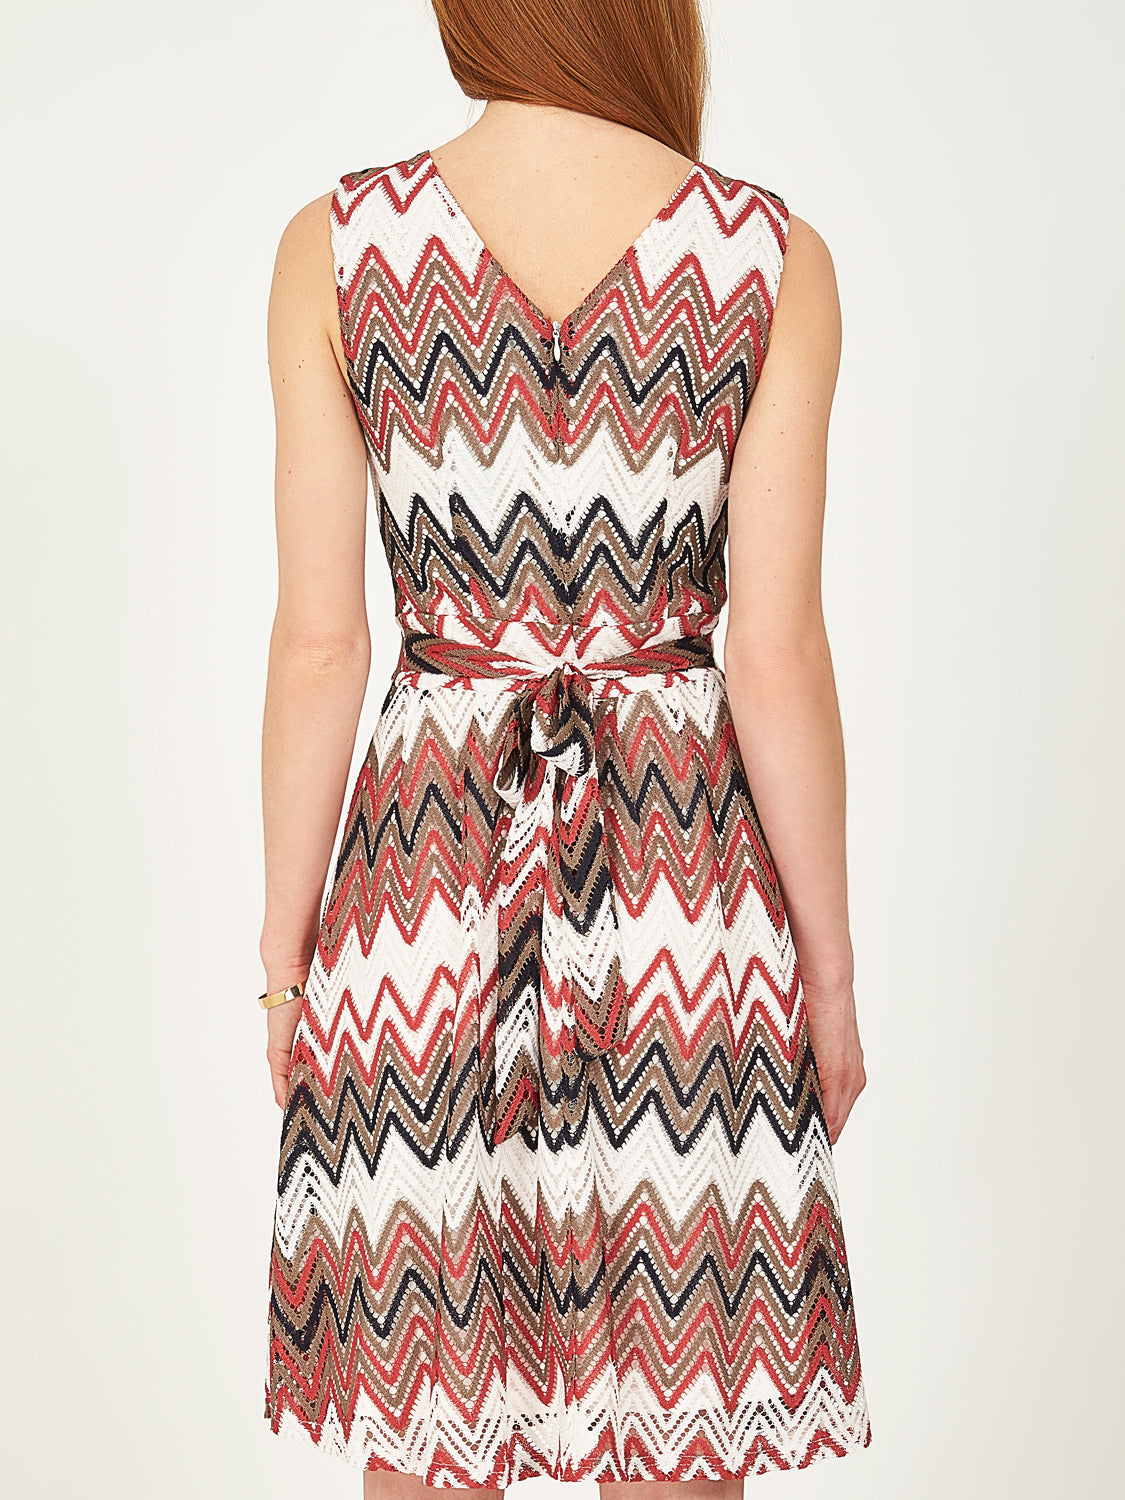 Chevron Fit & Flare Dress